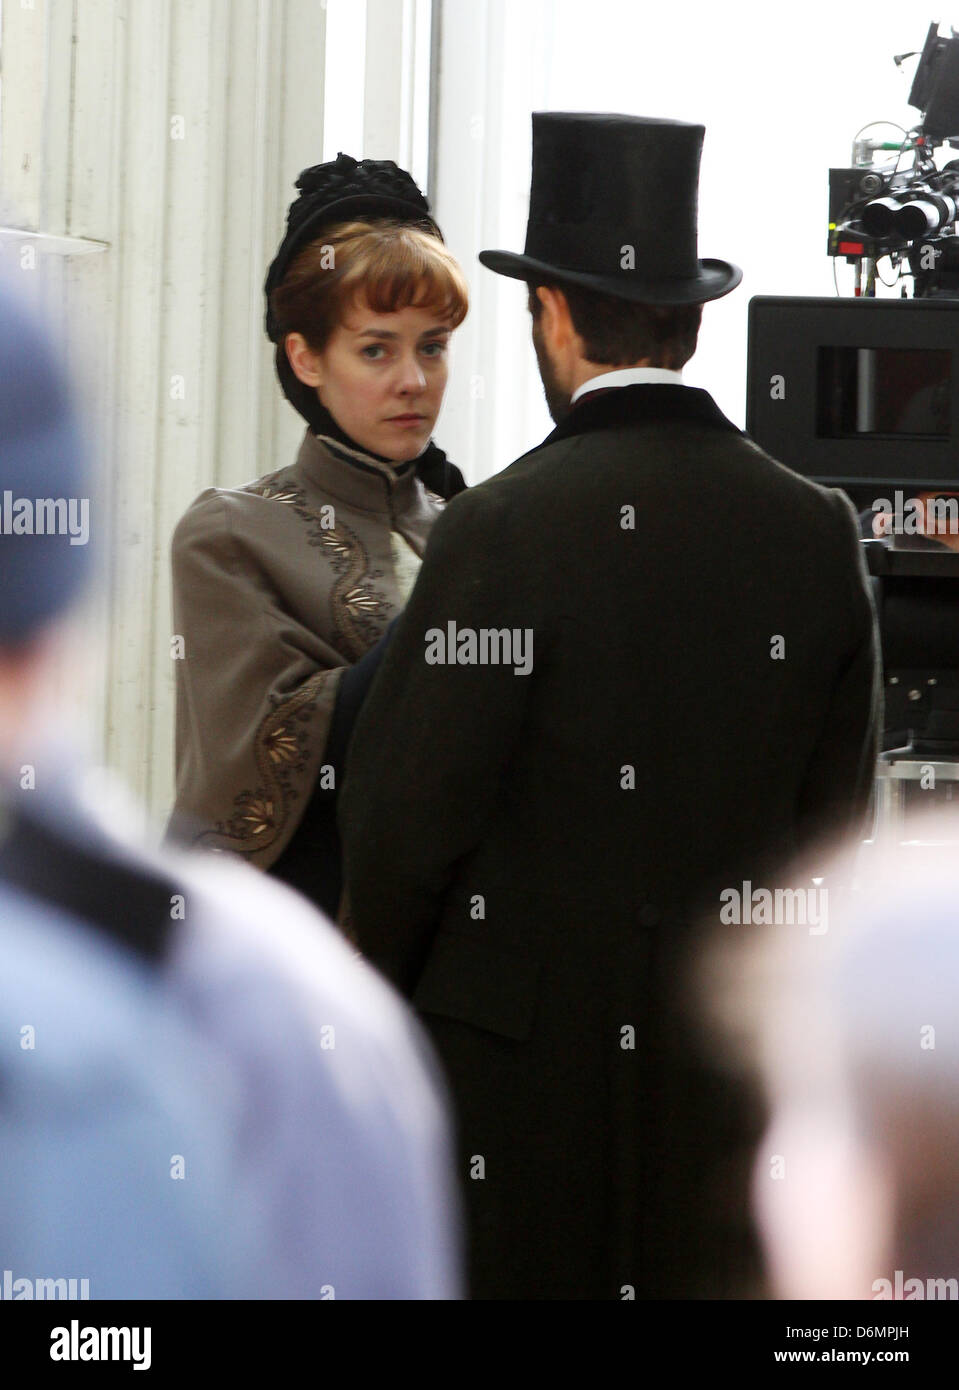 London, UK, 20th Apr, 2013: Jena Malone and Ed Stoppard filming on location for Angelica period thriller in central - Stock Image